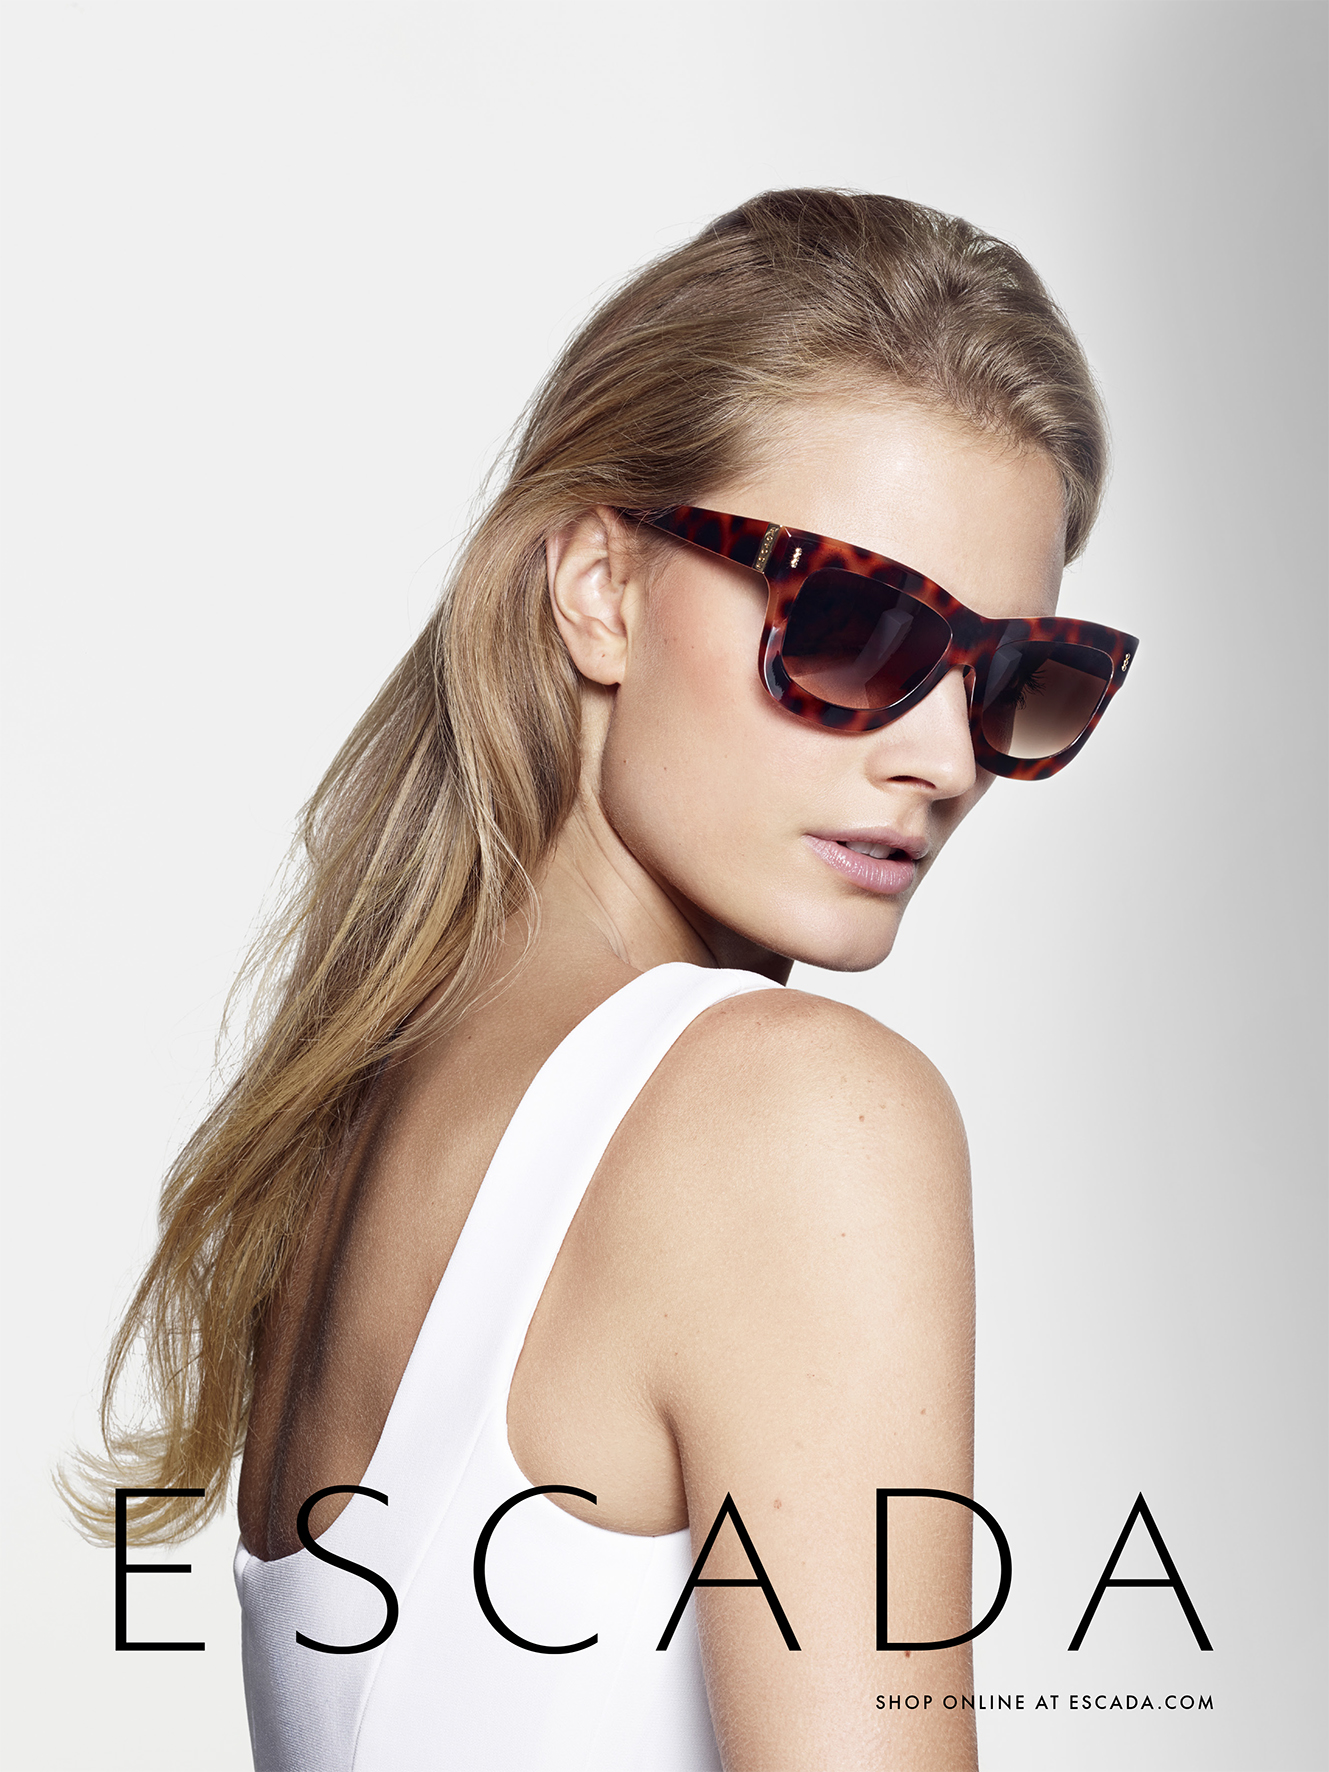 Escada_1-1_225x300_Image_Optics_Master-1.jpg